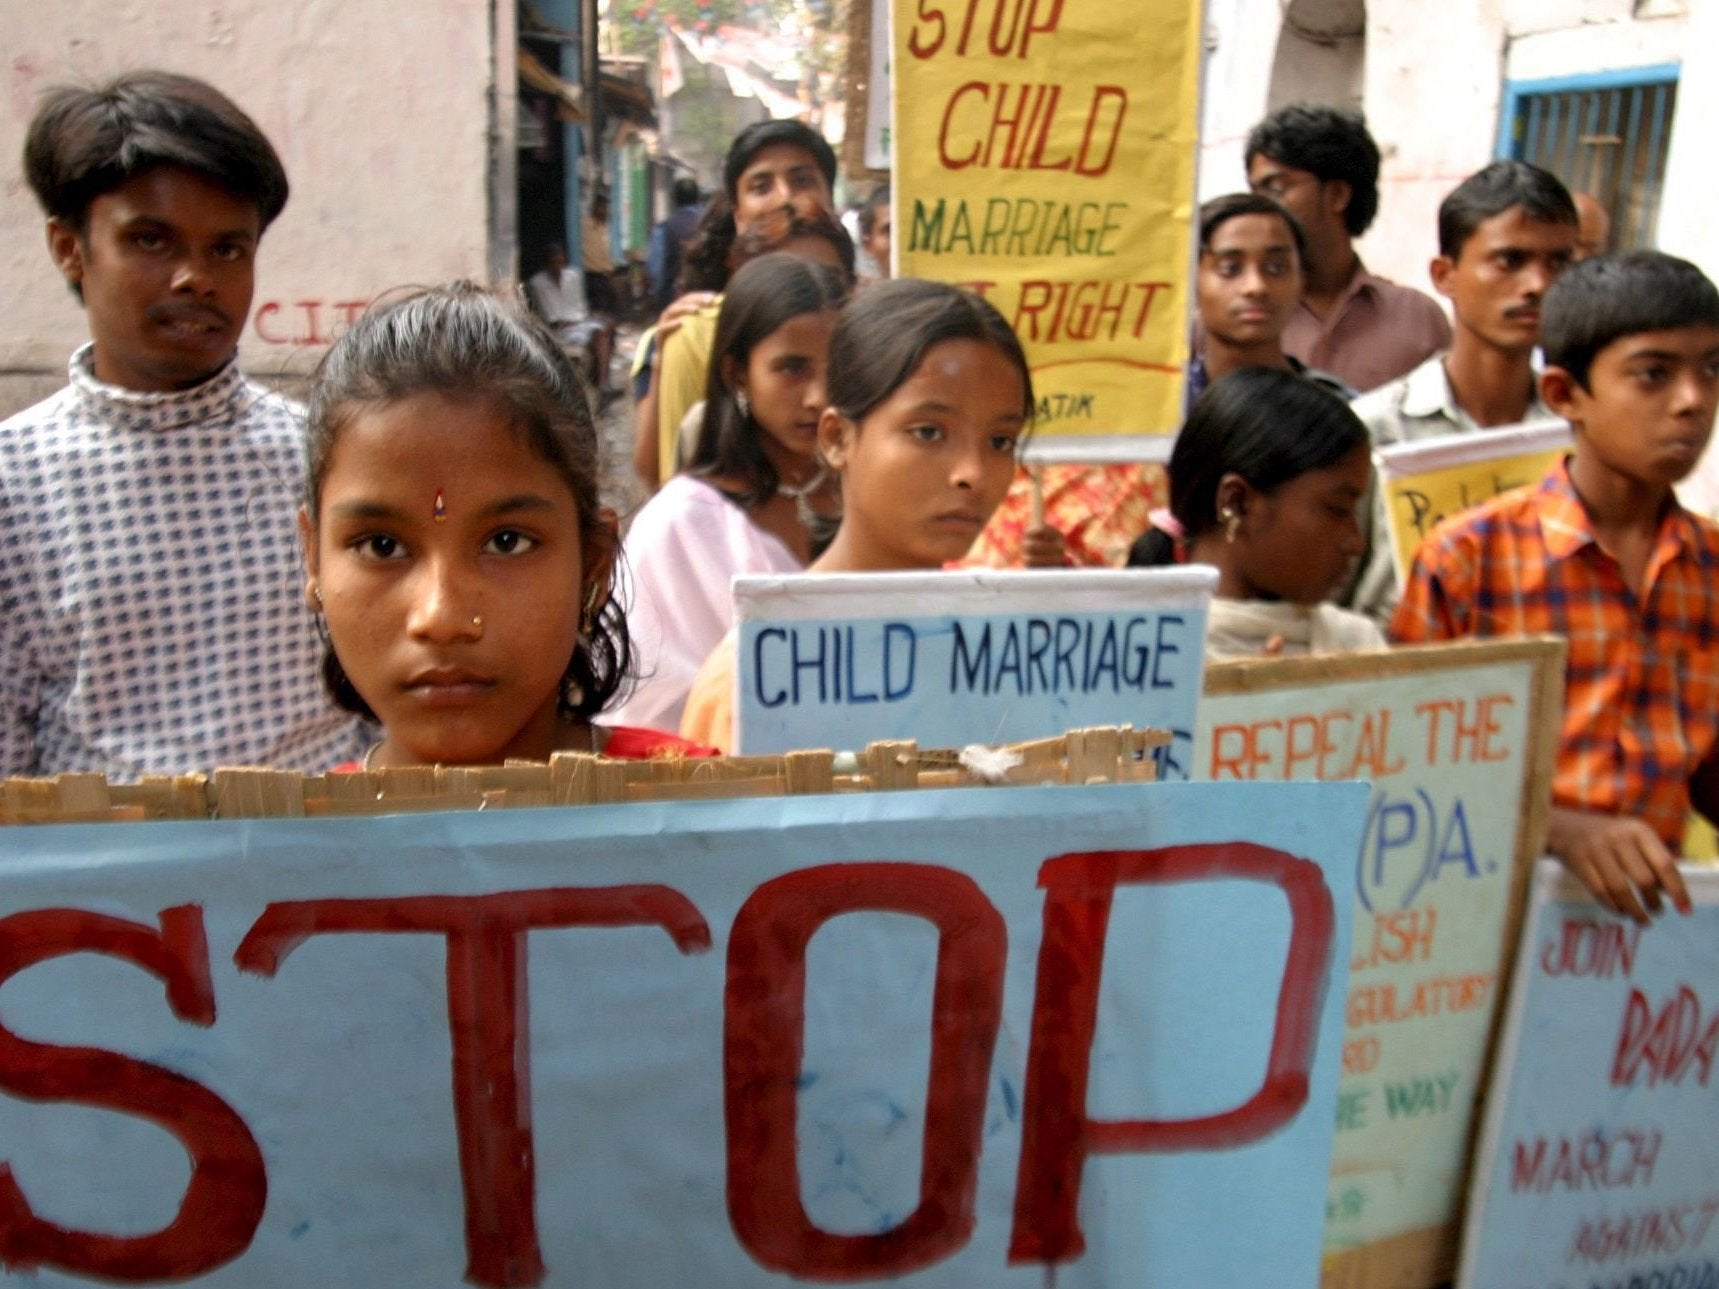 child marriage - latest news, breaking stories and comment - The